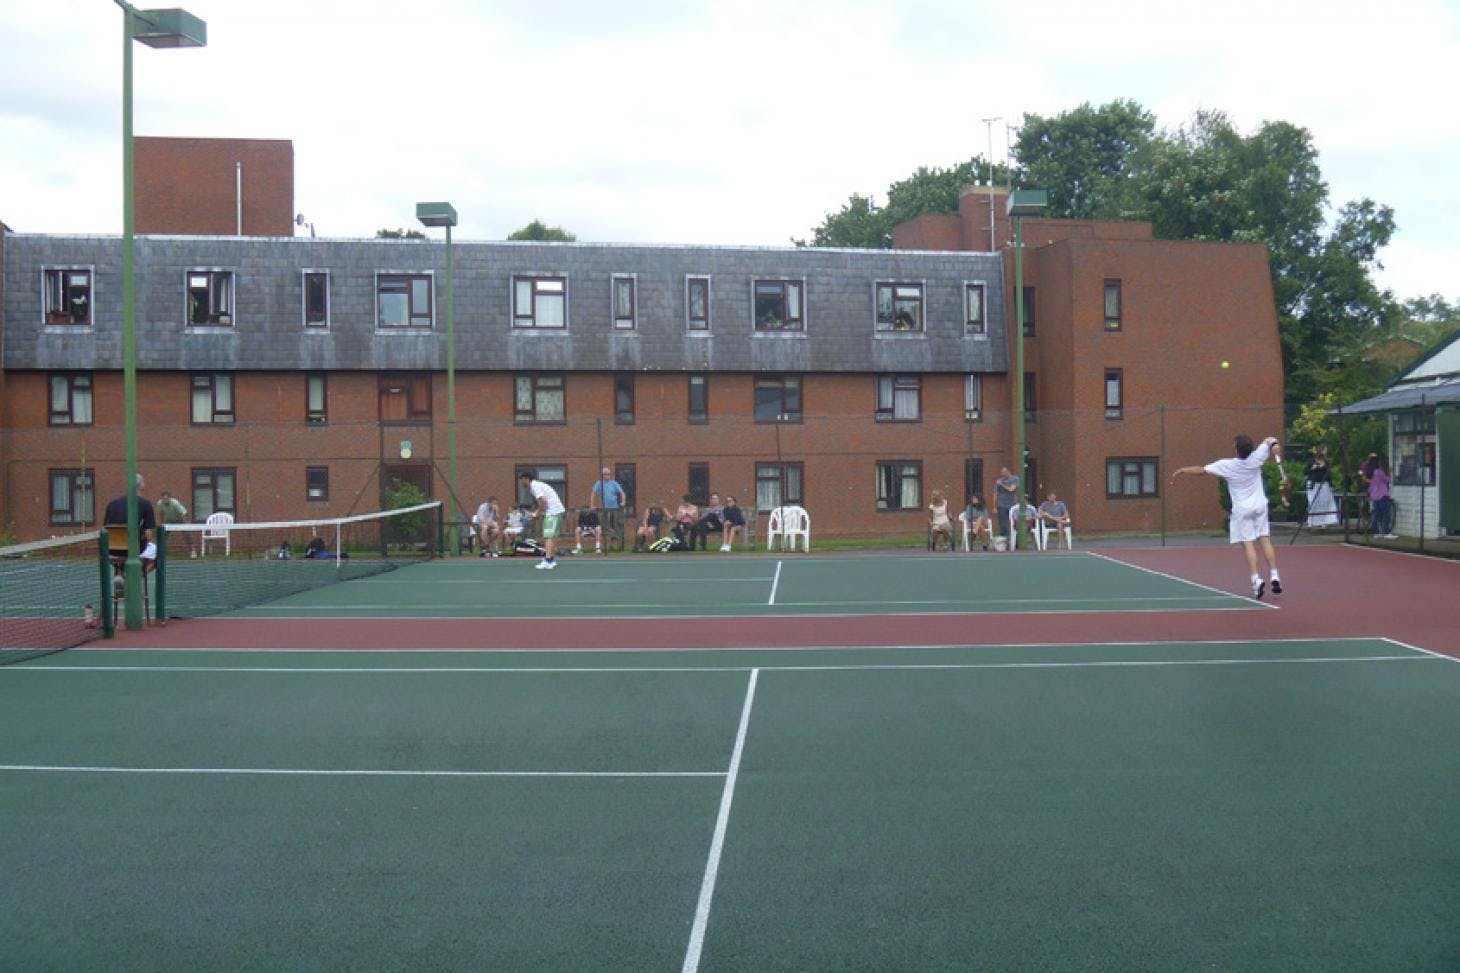 Stormont Lawn Tennis & Squash Racquets Club Outdoor | Hard (macadam) tennis court